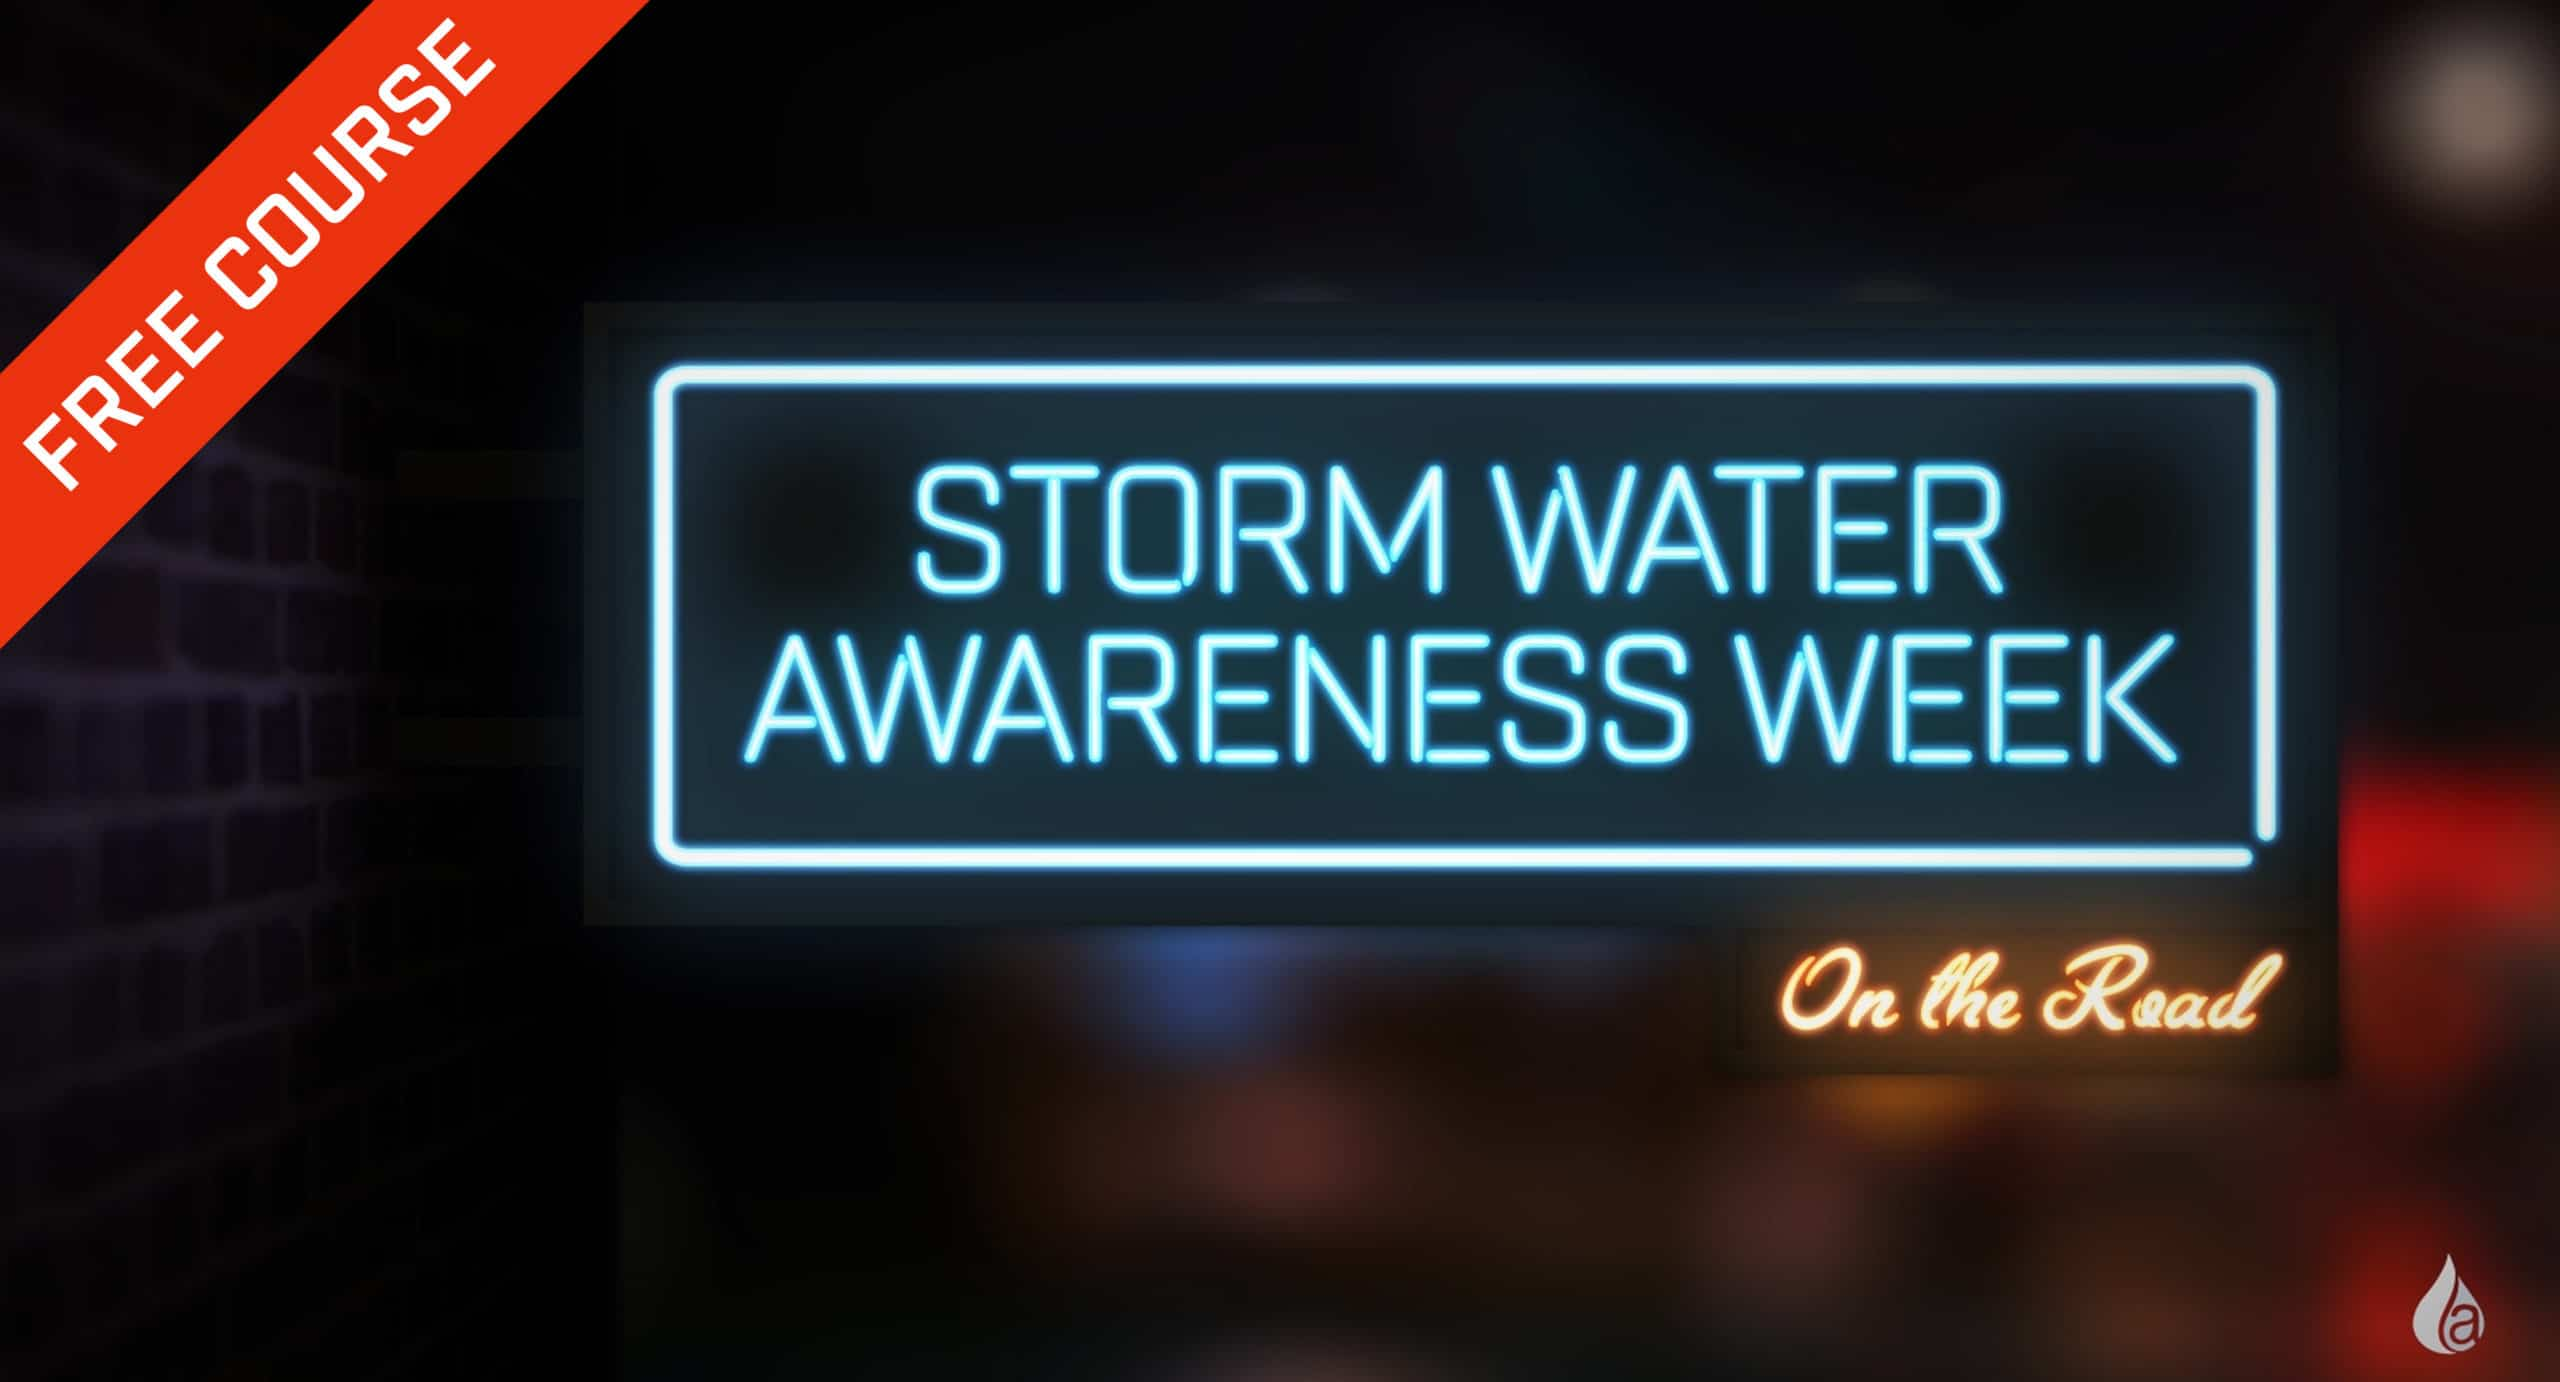 Storm Water Awareness Week 2017